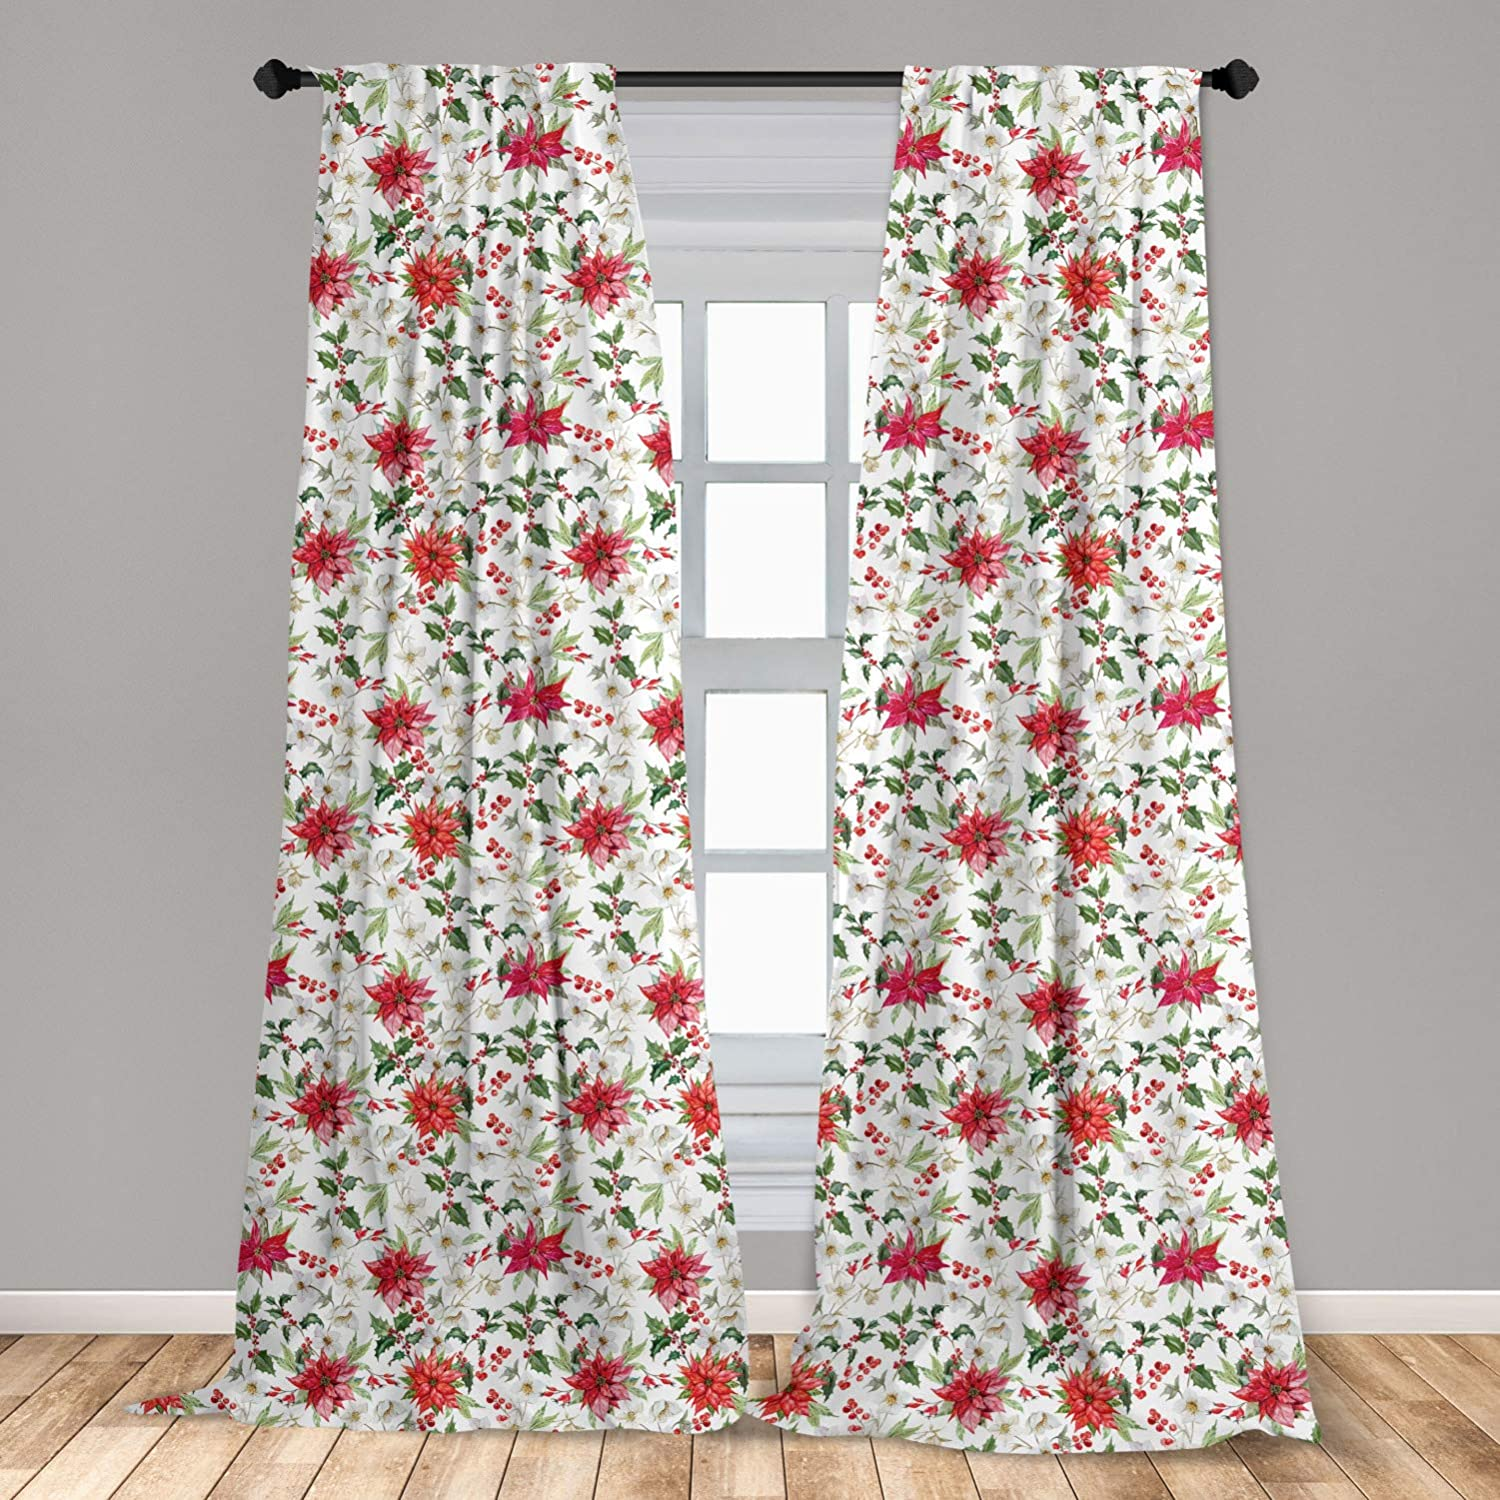 """Ambesonne Watercolor Curtains, Fresh Poinsettia Flowers and Rowan Berry Branches Christmas Garden, Window Treatments 2 Panel Set for Living Room Bedroom Decor, 56"""" x 95"""", Vermilion Magenta"""